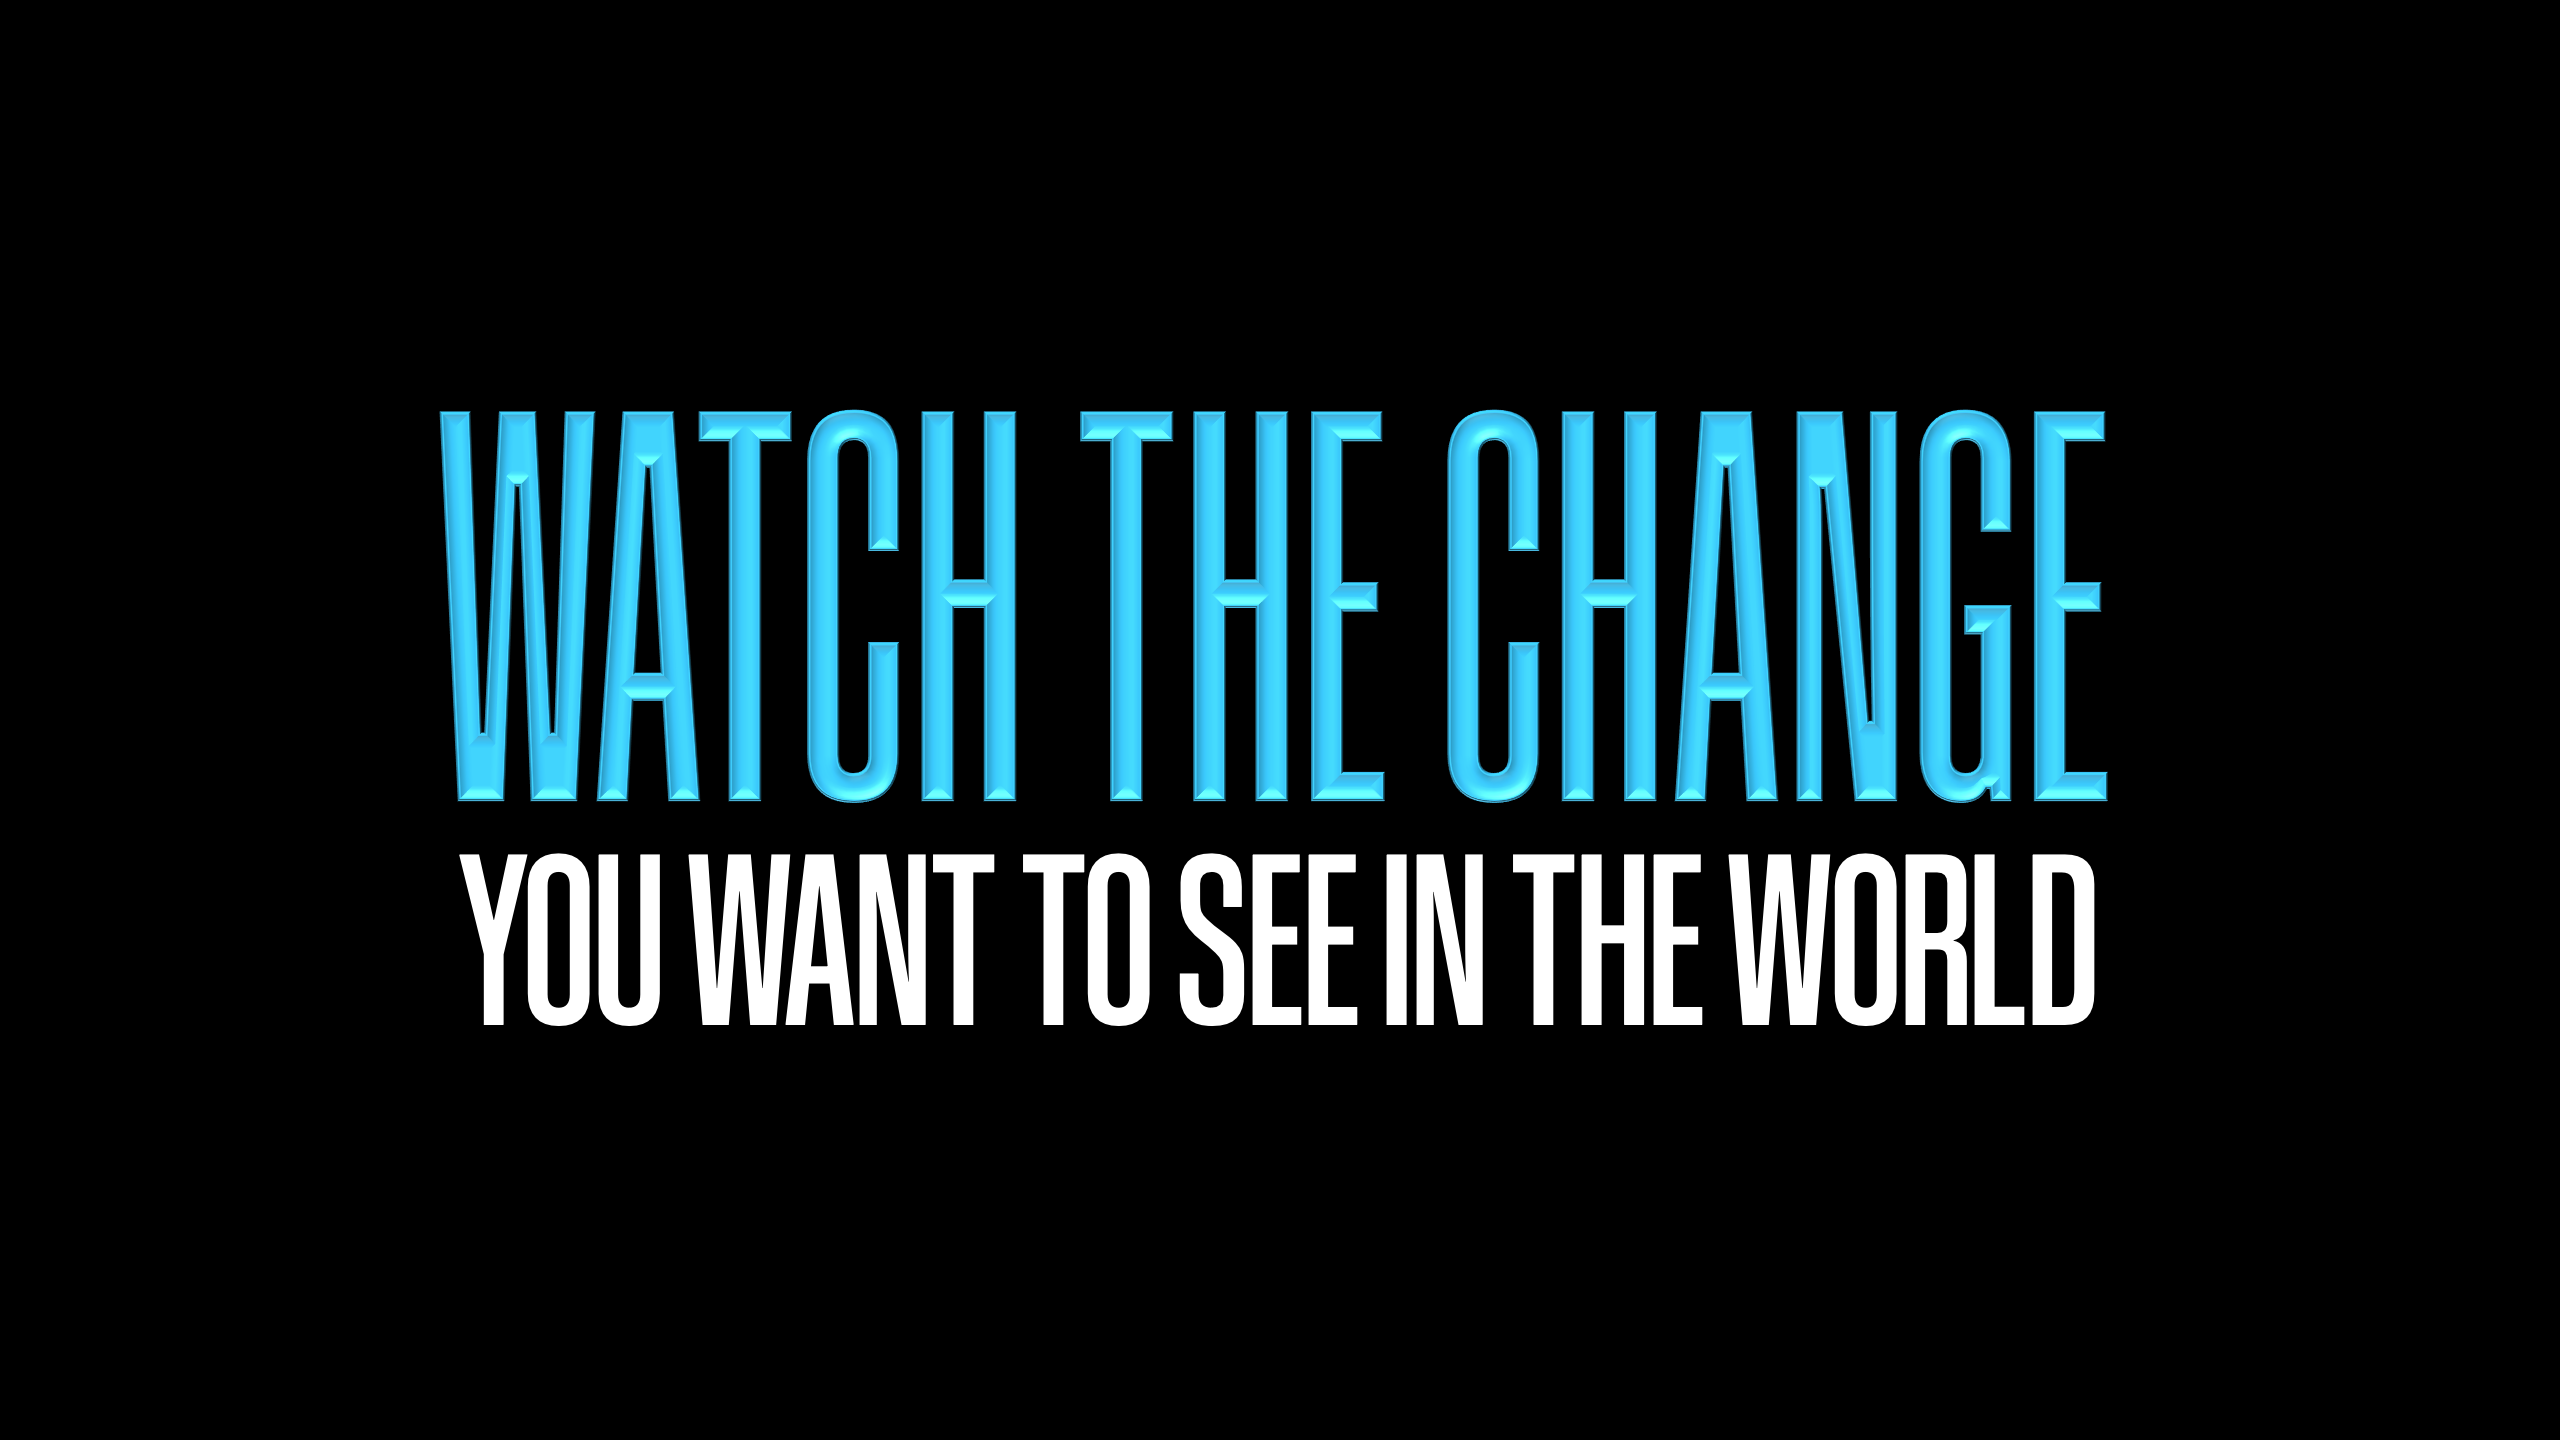 Watch the change you want to see in the world